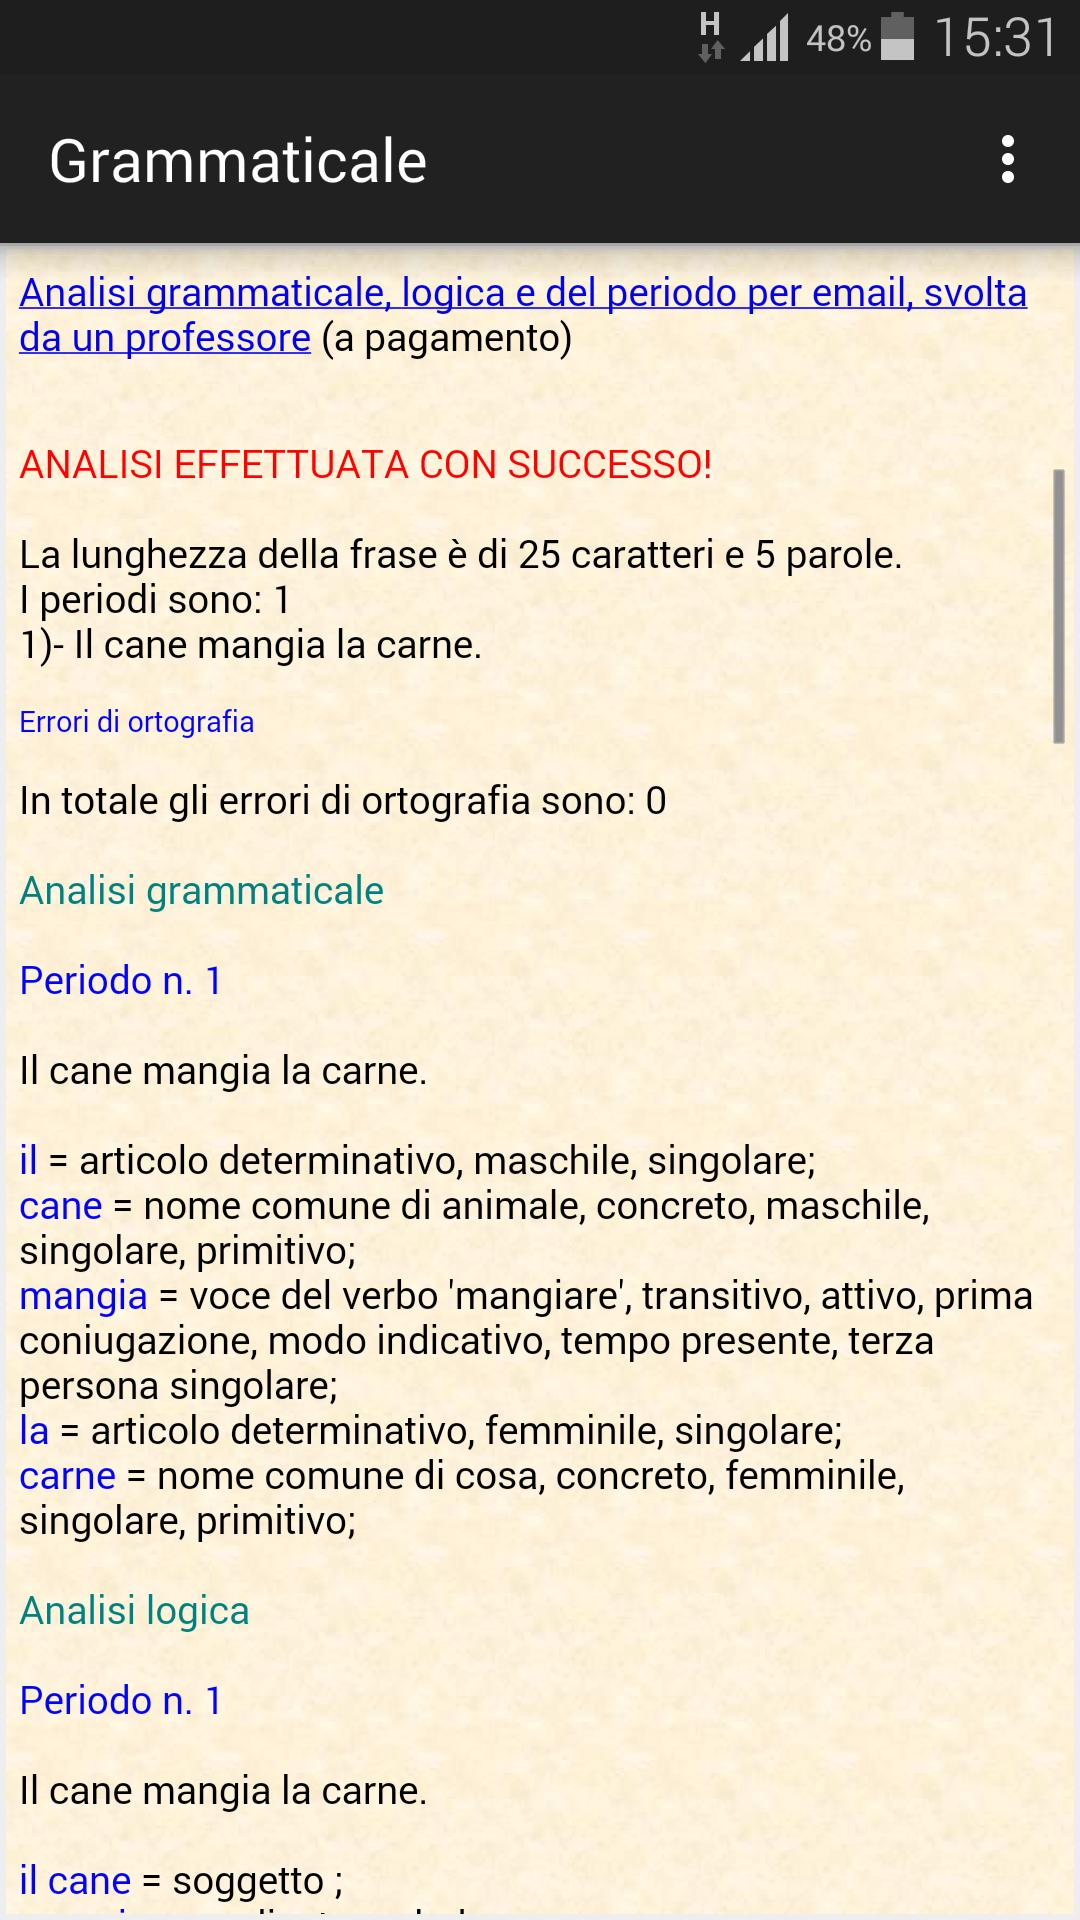 Analisi Grammaticale Italiana For Android Apk Download